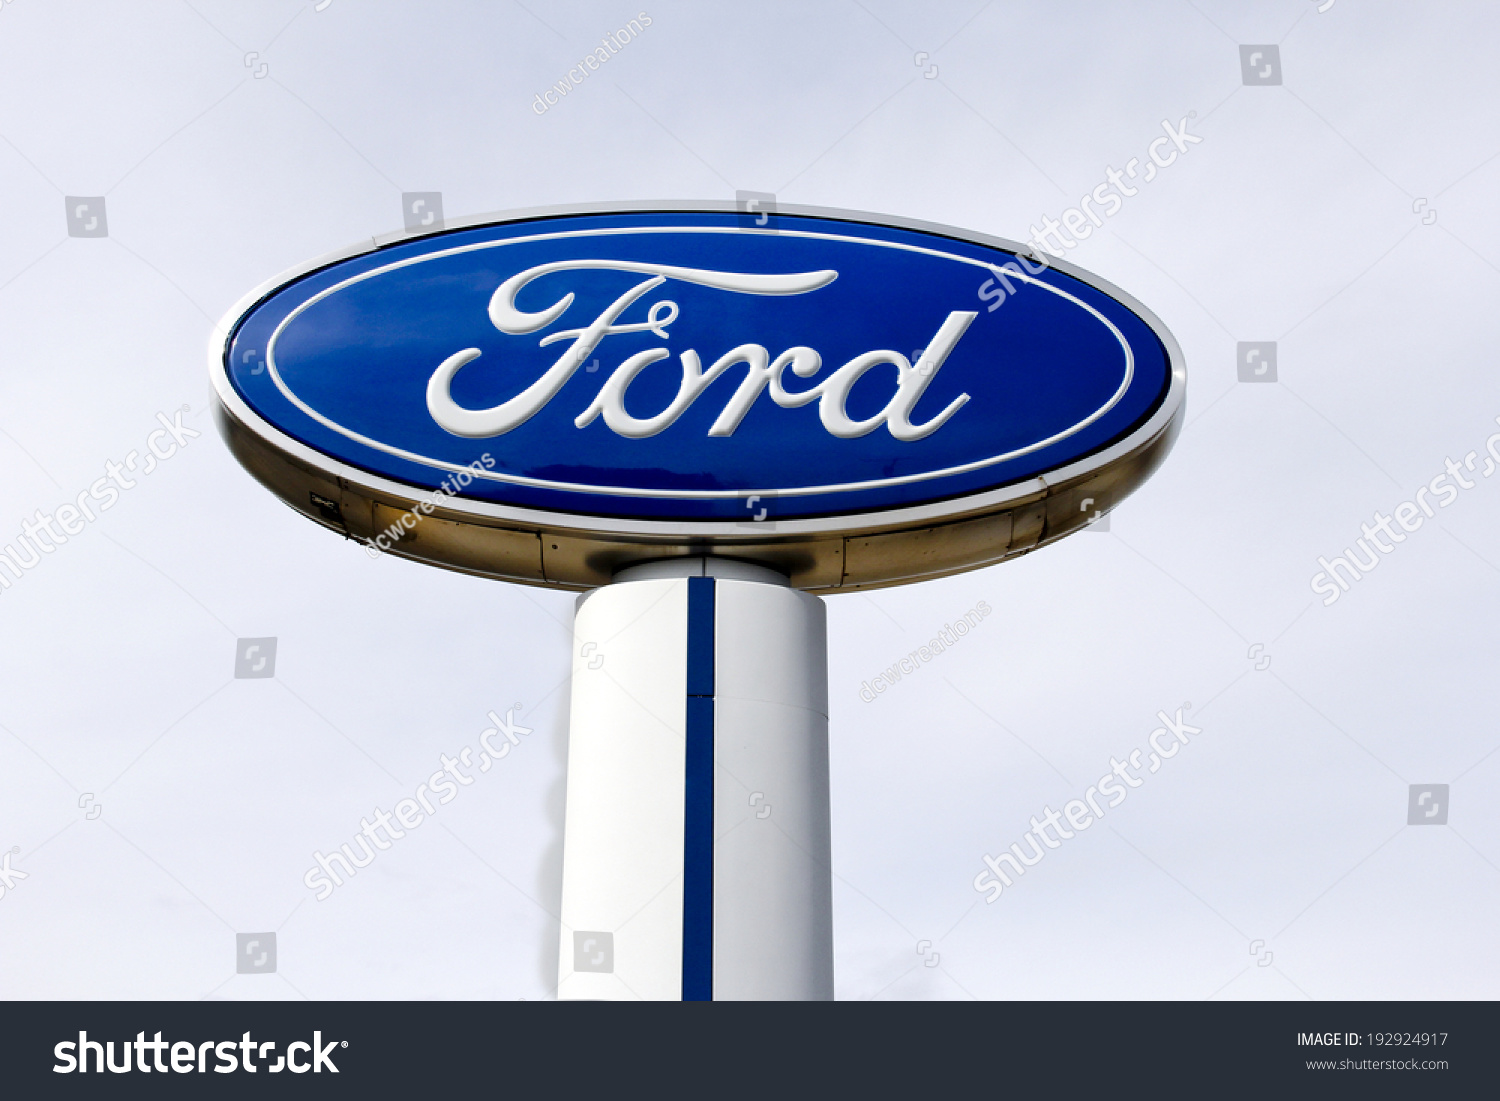 Spencer wisconsin may 15 2014 ford motor company sign for Ford motor company stock